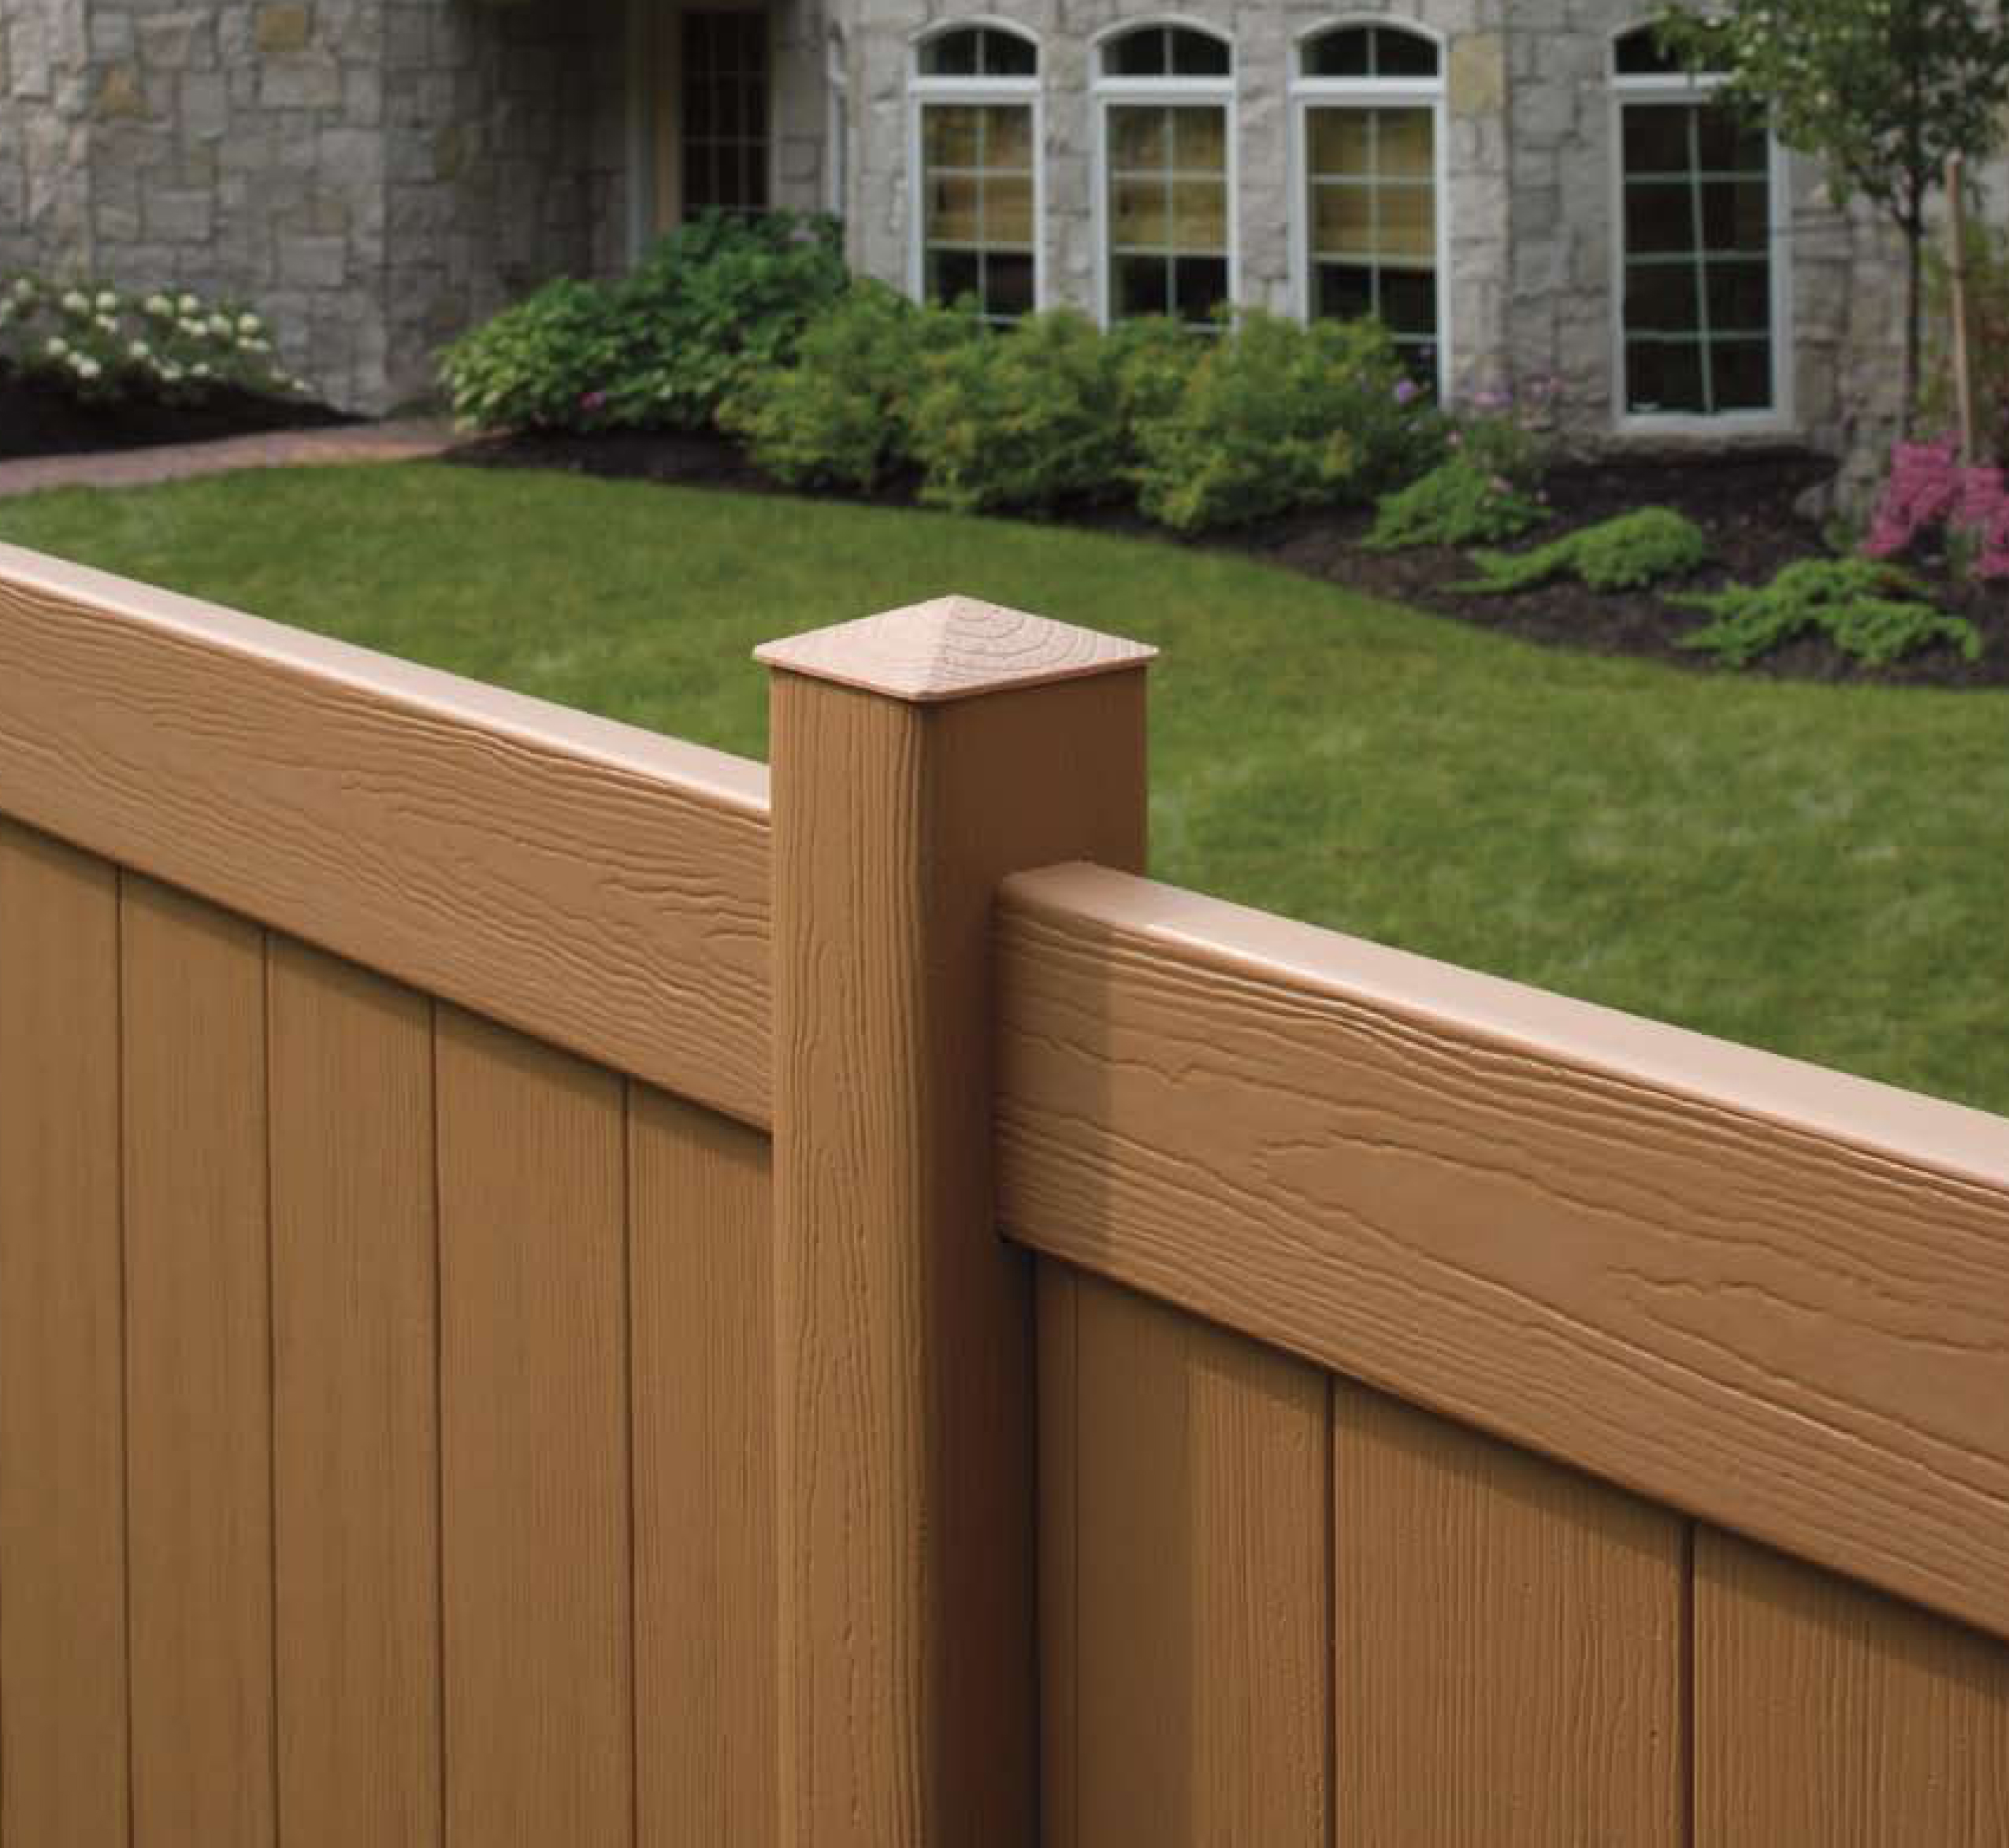 Millbrook vinyl fence by bufftech discount fence supply inc gallery baanklon Choice Image